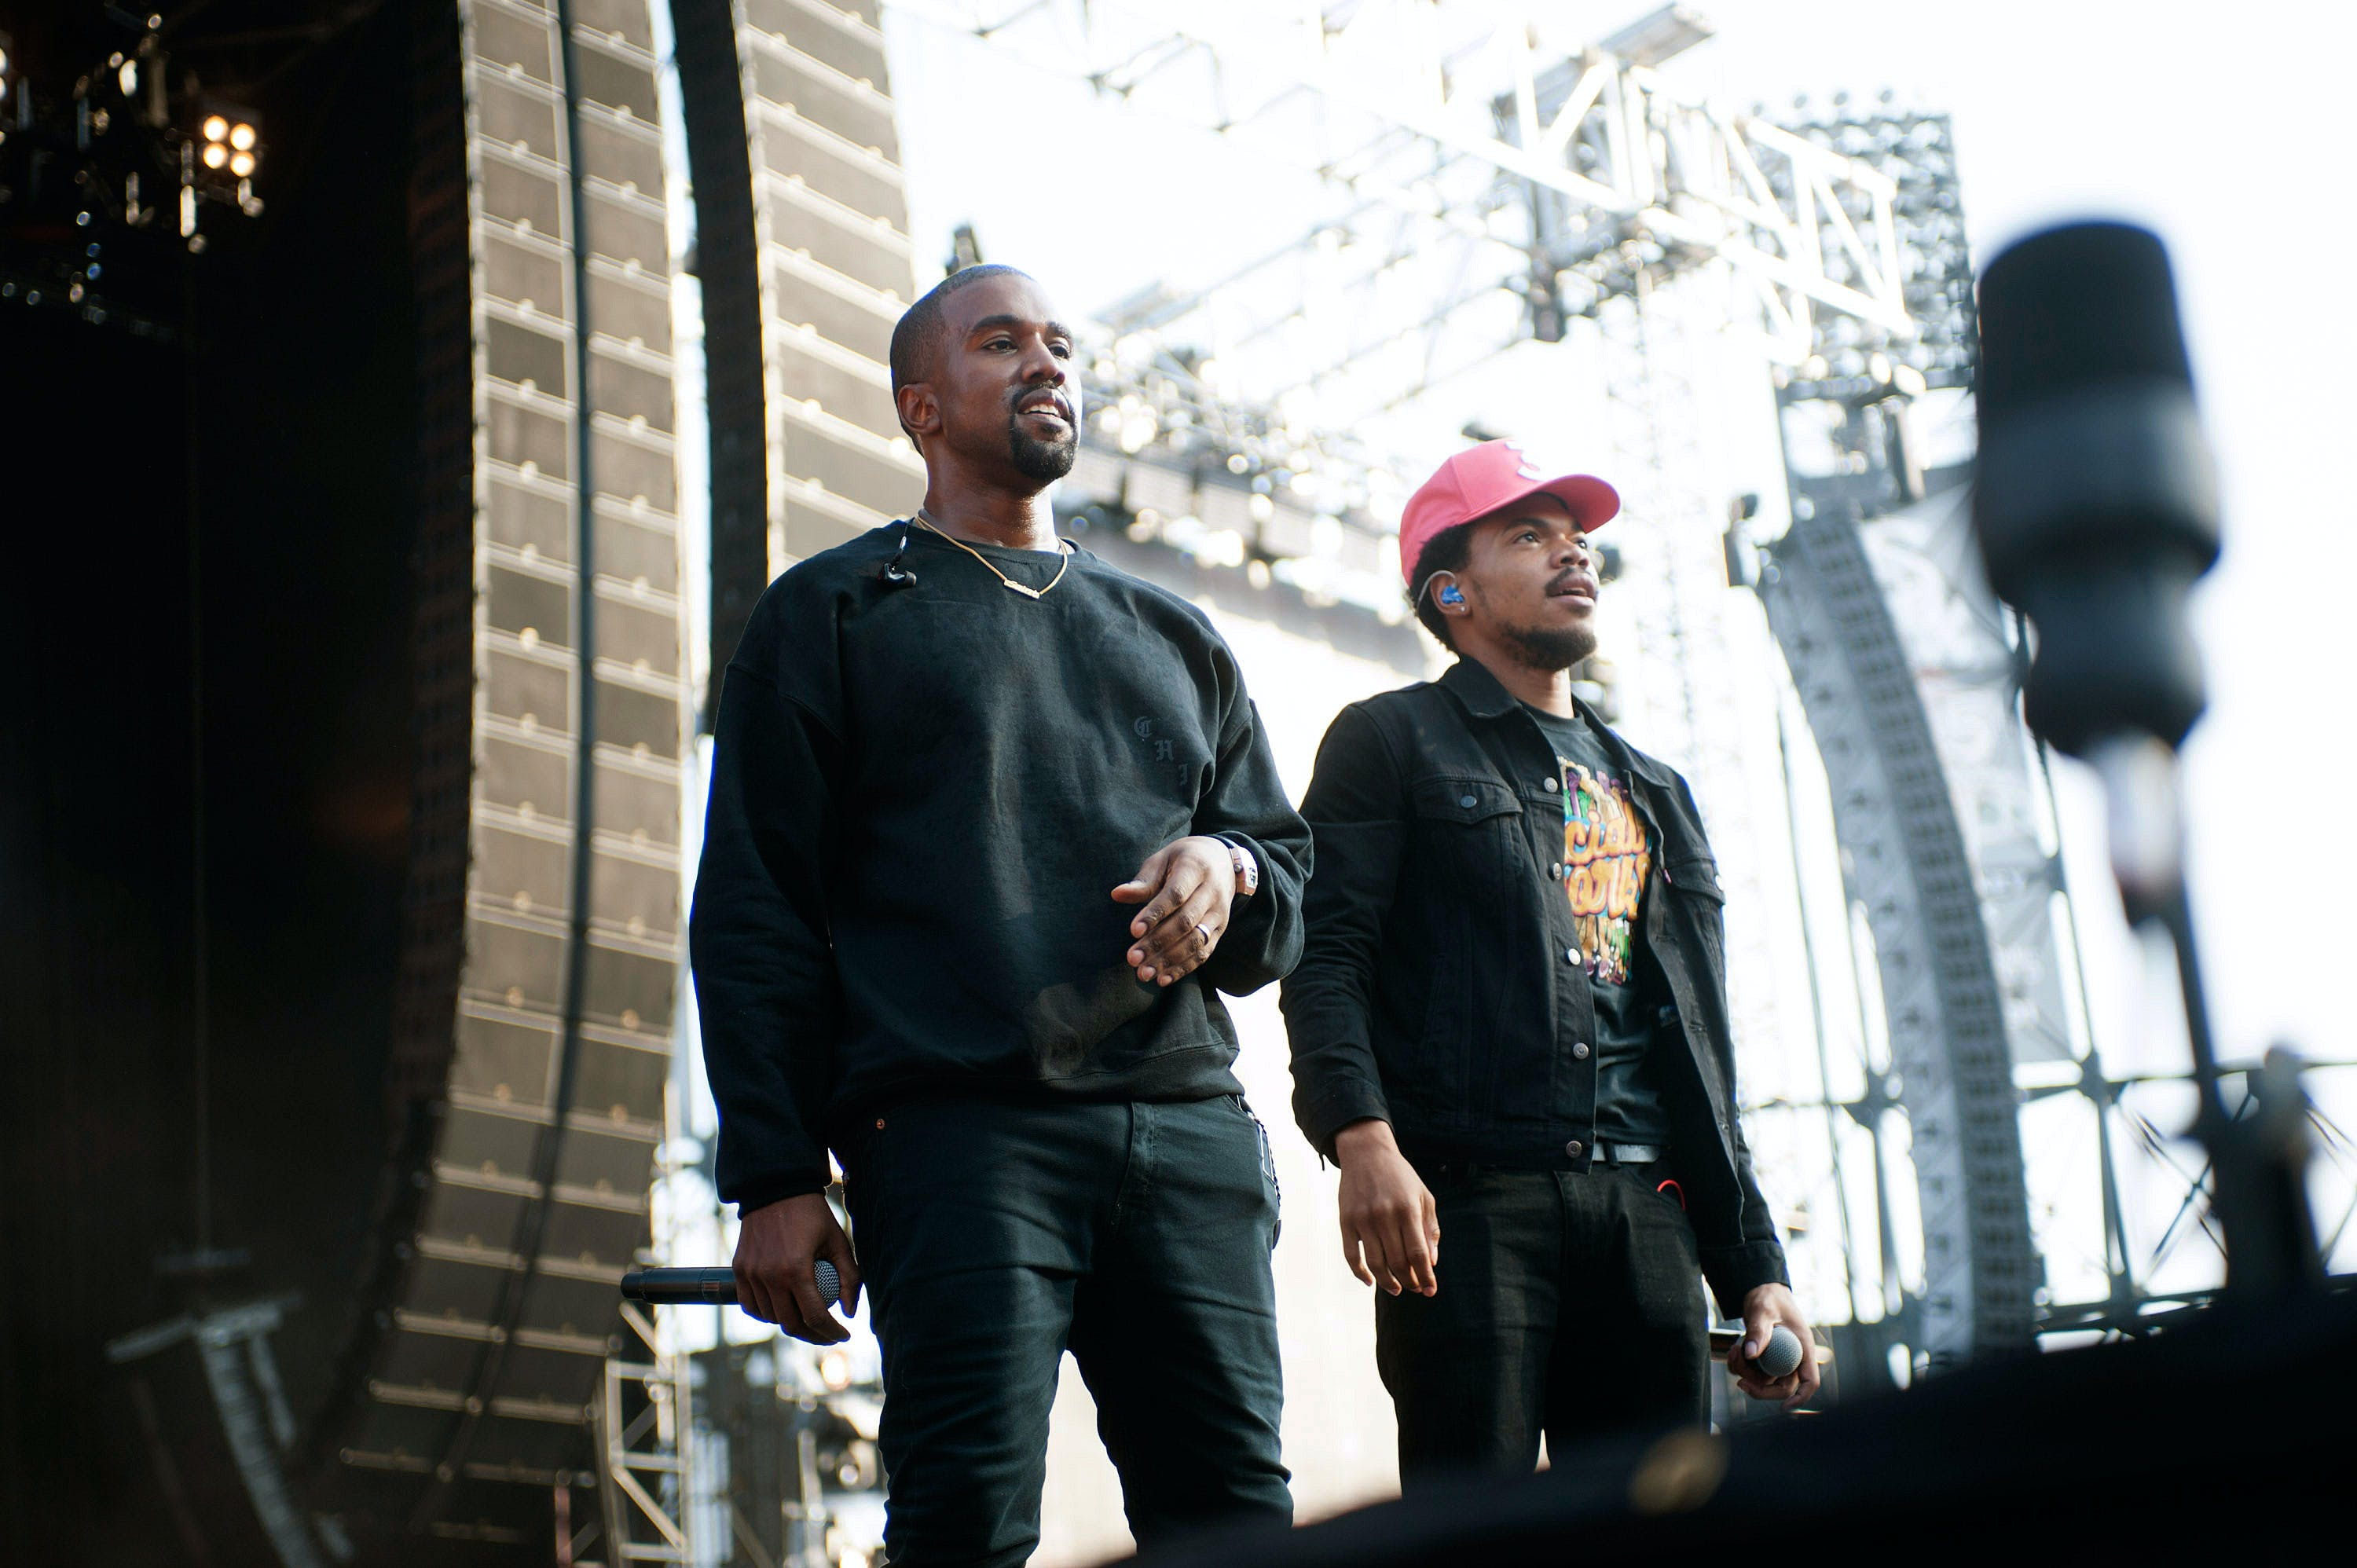 Chance the Rapper Confirms Collaborations with Kanye West and Childish Gambino Cannabis is Legal in Vermont, But Gifting it Isnt